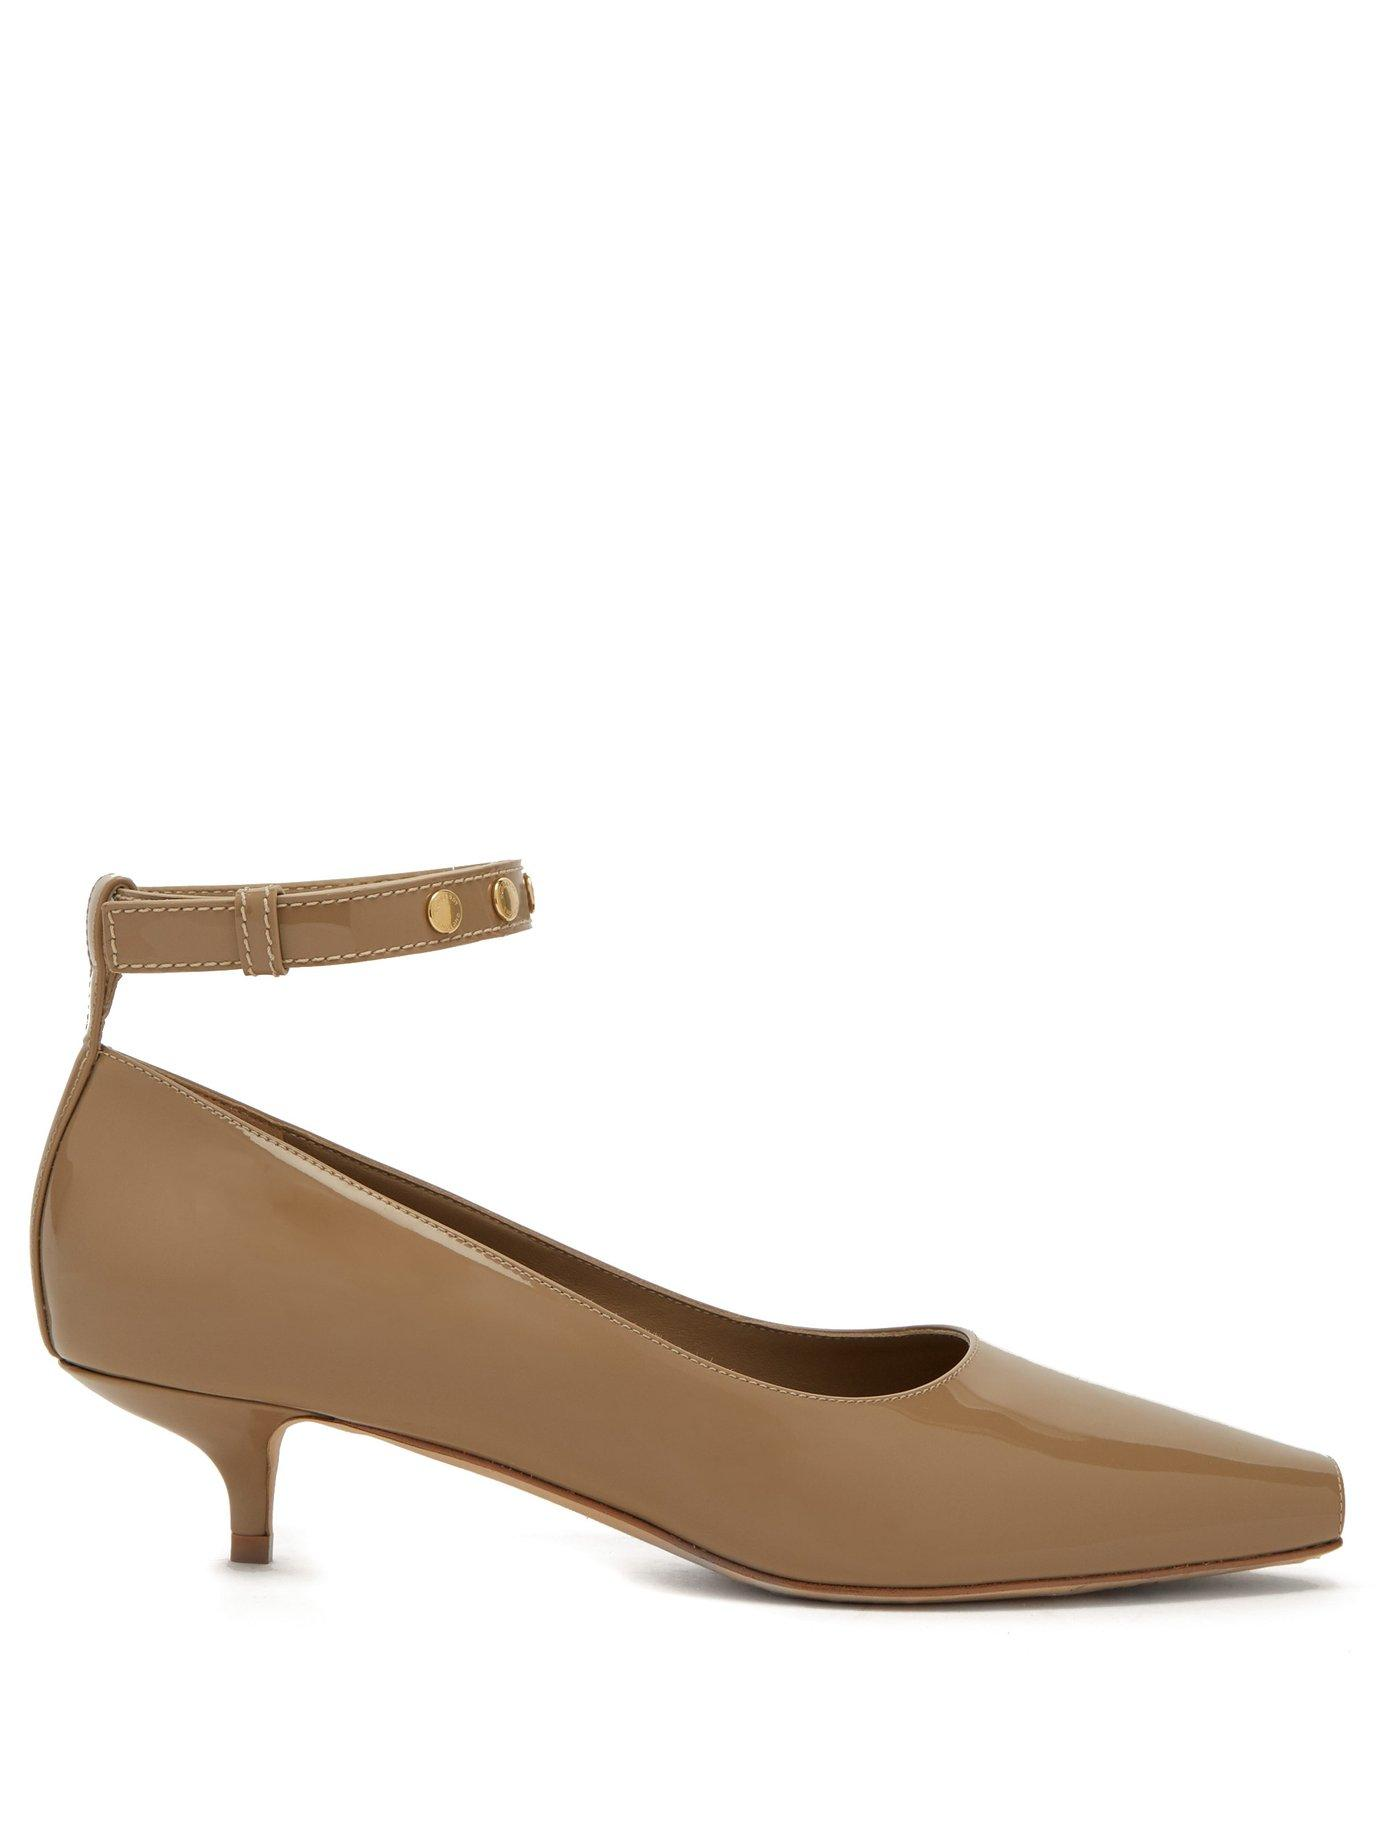 6becf3e7076e Lyst - Burberry Dill Patent Leather Kitten Heels in Natural